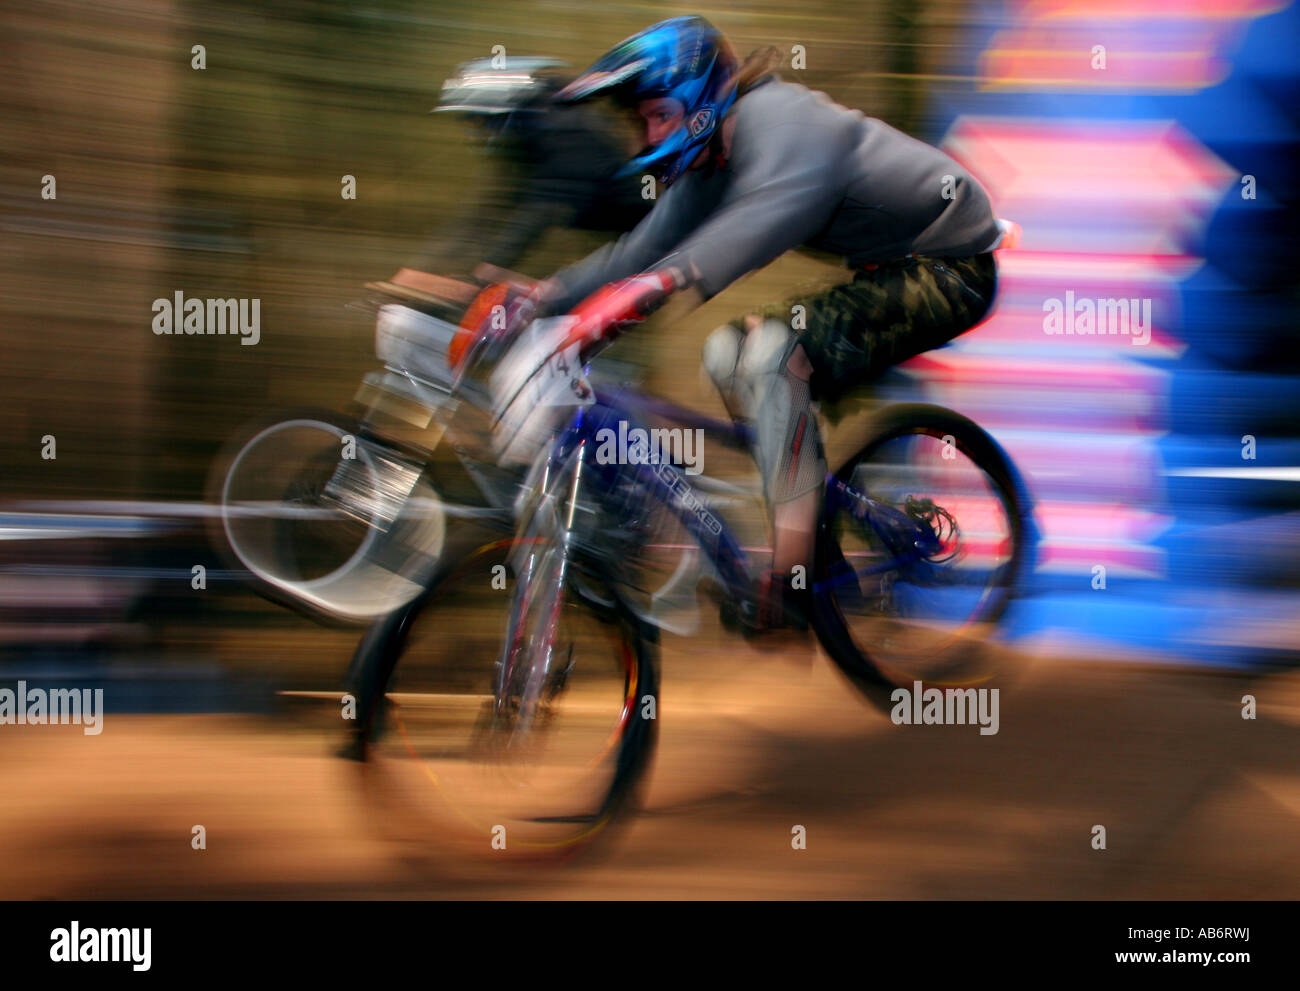 Two riders land after a jump at the NPS 4X championship round at Chicksands, Bedfordshire, 2007. - Stock Image